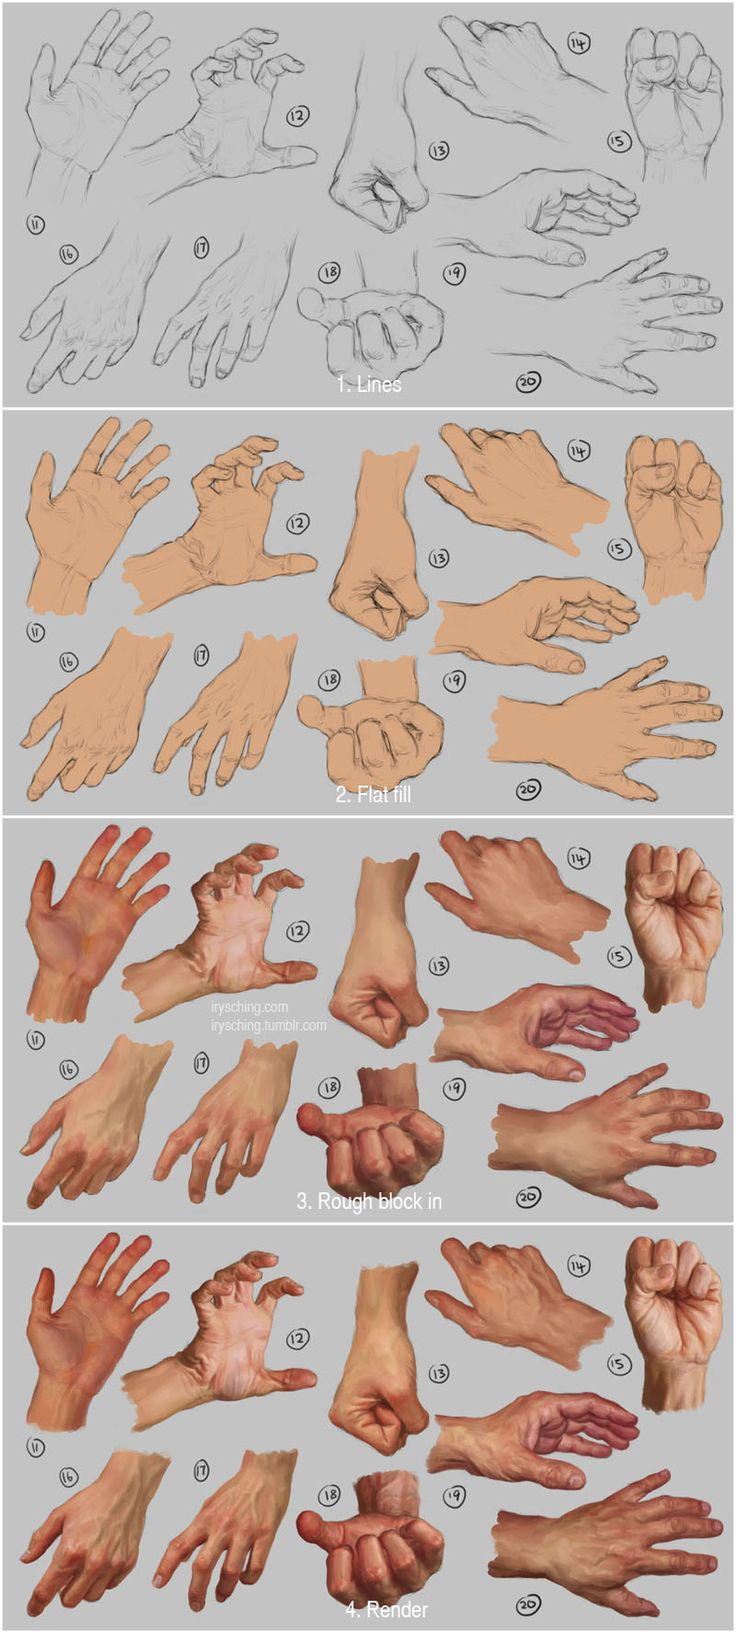 Hand study 2 - Steps by irysching.deviantart.com on @deviantART ✤ || CHARACTER DESIGN REFERENCES | キャラクターデザイン | çizgi film • Find more at https://www.facebook.com/CharacterDesignReferences & http://www.pinterest.com/characterdesigh if you're looking for: #color #theory #contrast #animation #how #to #draw #paint #drawing #tutorial #lesson #balance #sketch #colors #painting #process #line #art #comics #tips #cartoon || ✤